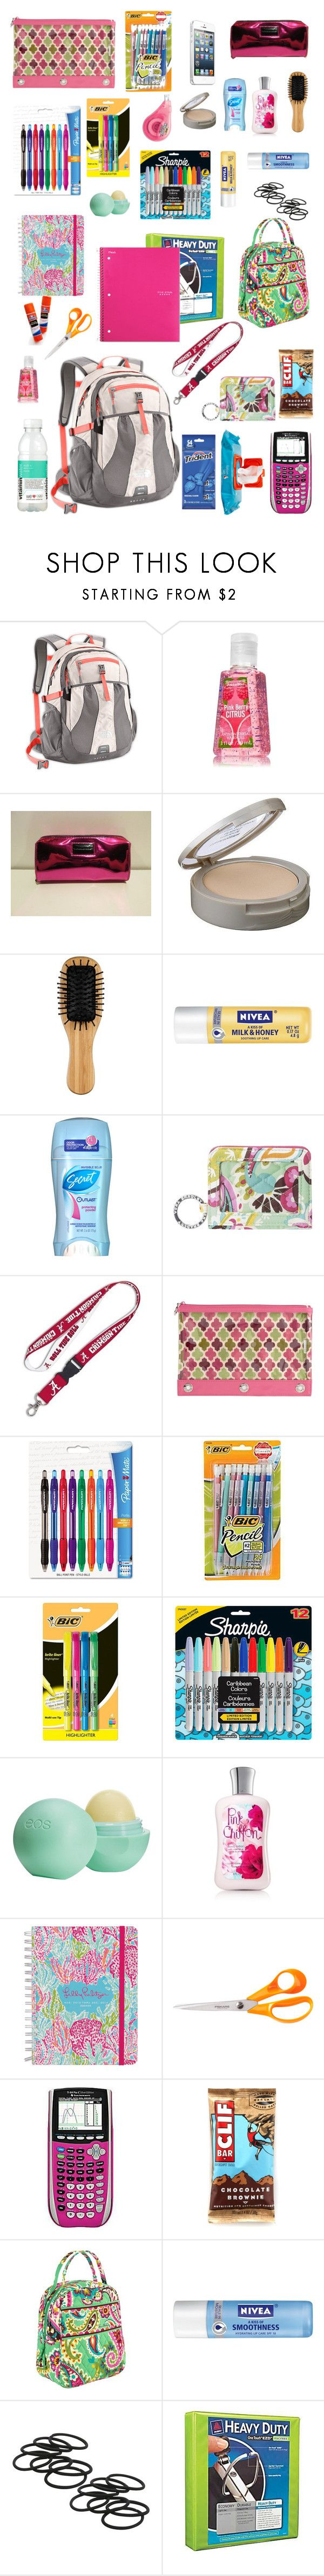 """Backpack essentials for back to school"" by cb14 ❤ liked on Polyvore featuring Victoria's Secret, Neutrogena, John Lewis, Nivea, Vera Bradley, Paper Mate, Wite, Sharpie, Eos and Lilly Pulitzer"